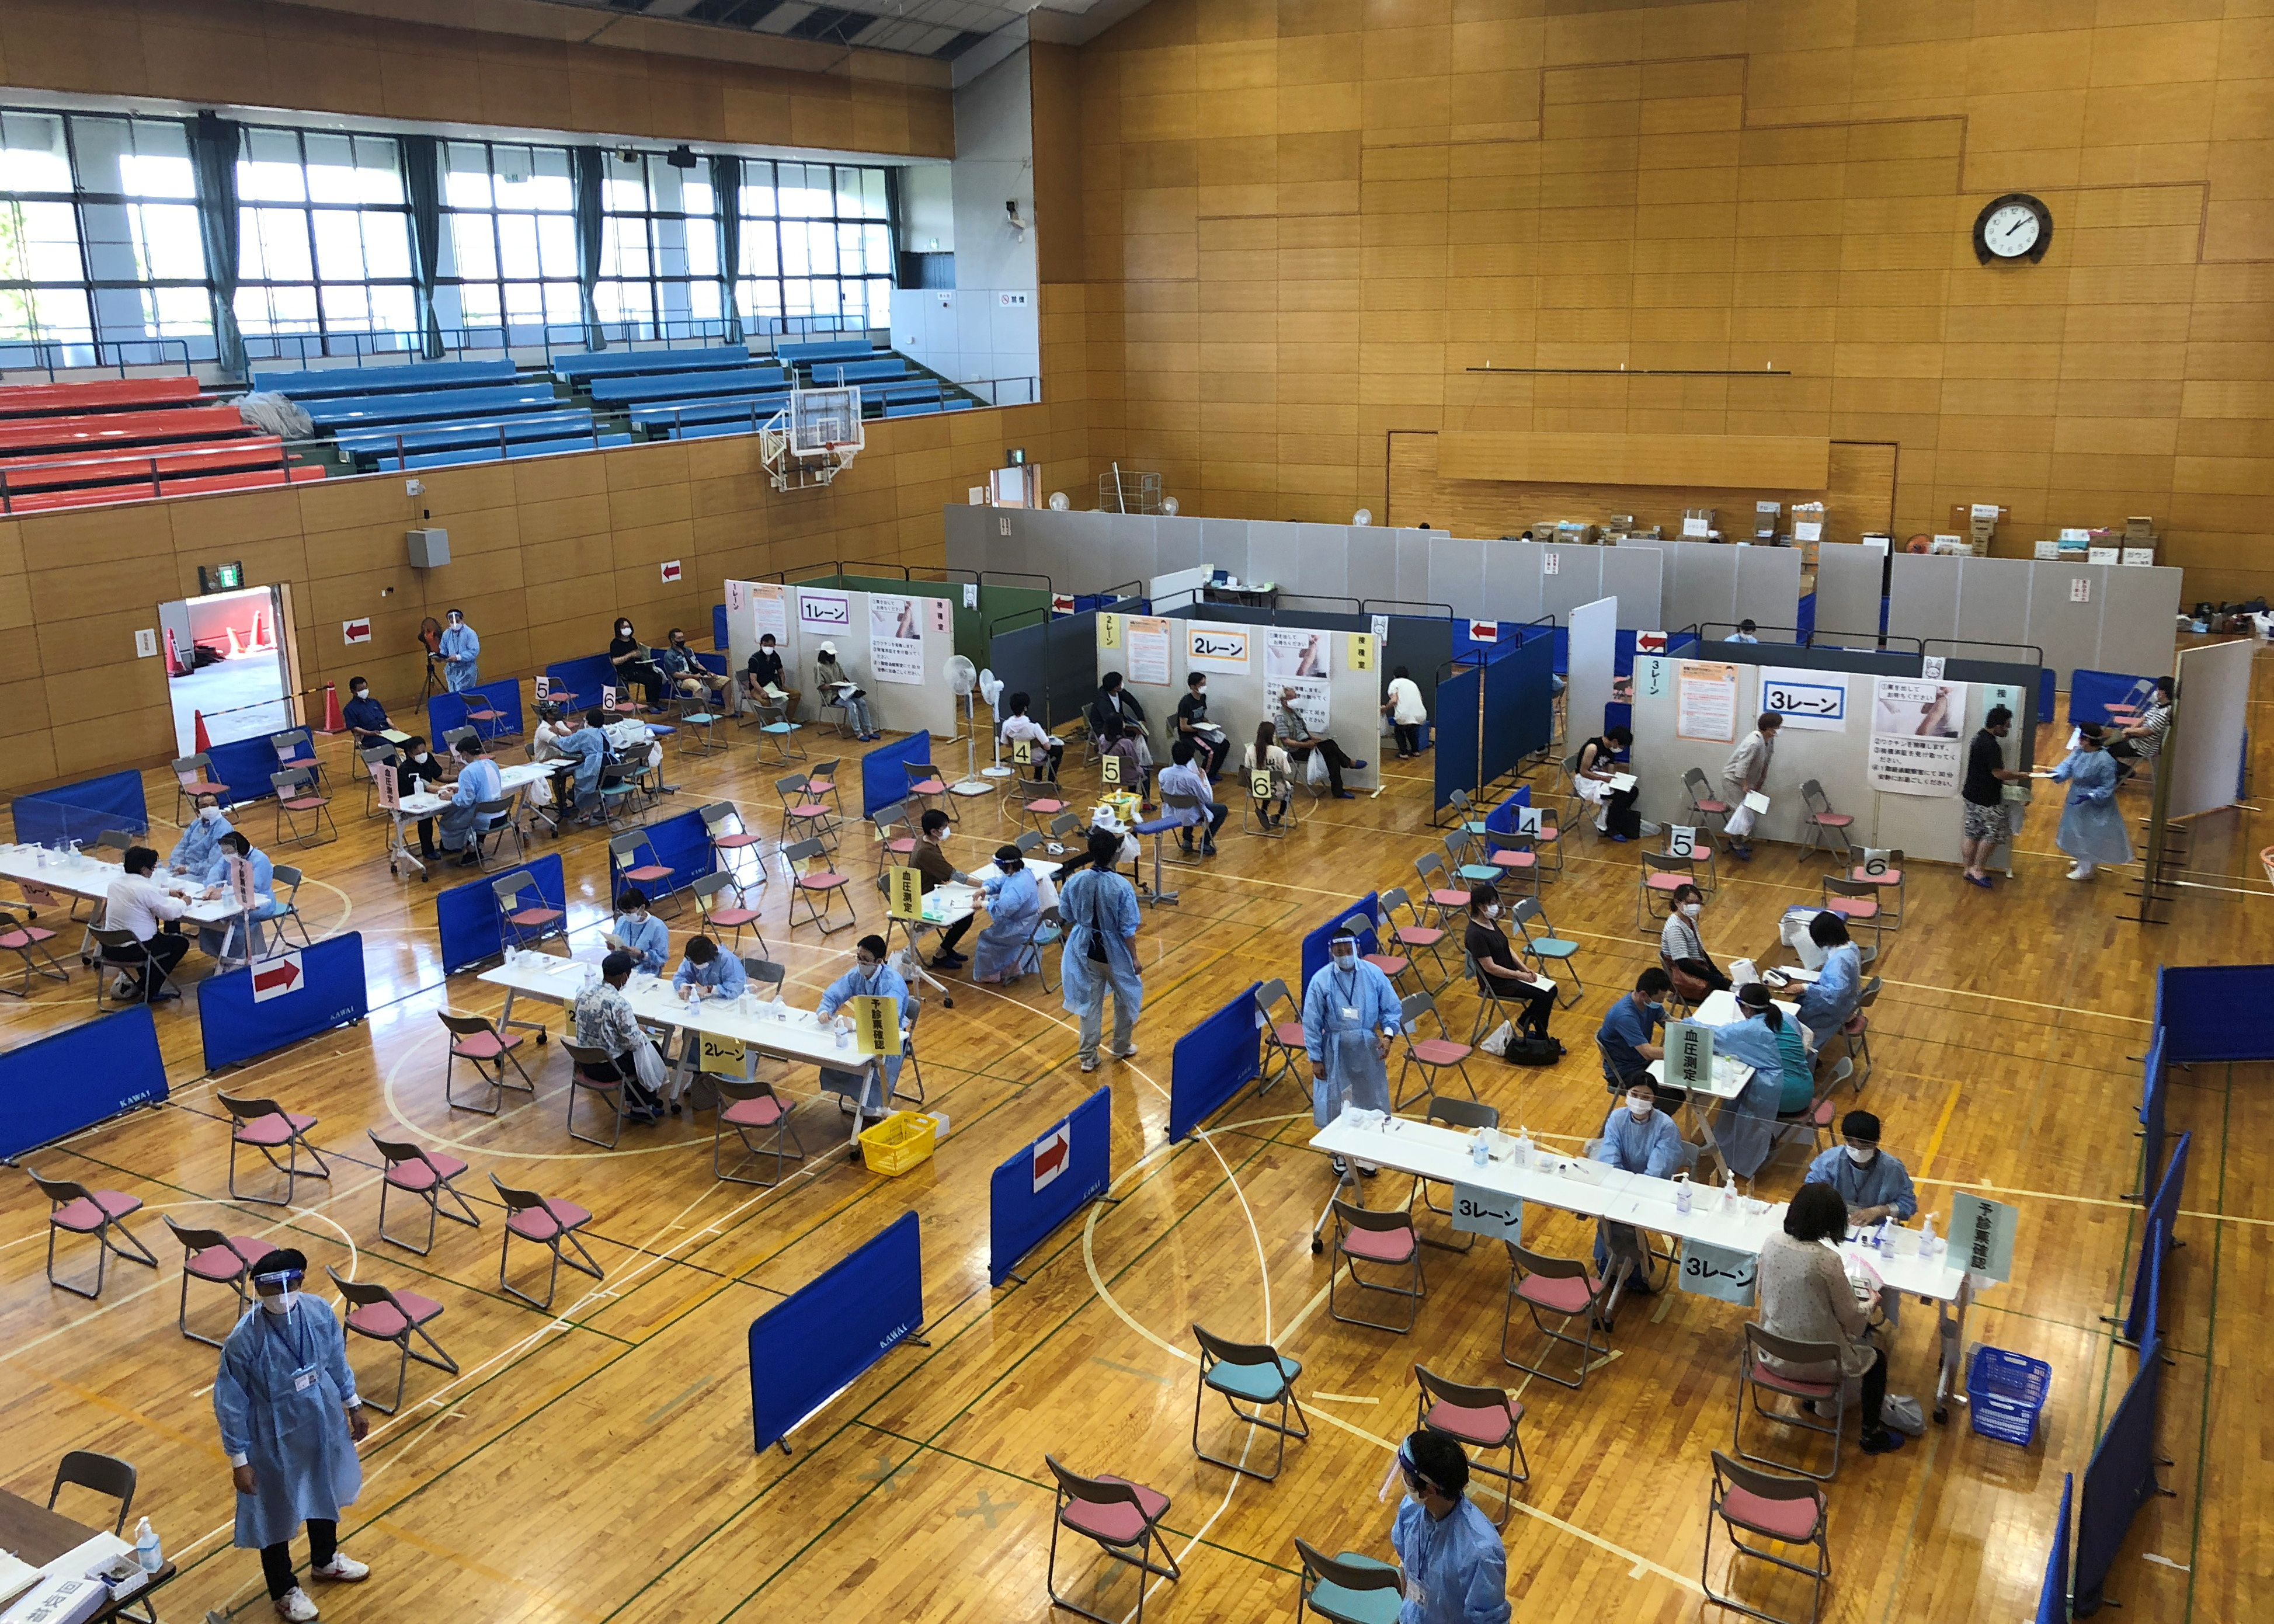 A gymnasium which turned into a mass vaccination centre for the elderly is pictured in Soma, Fukushima Prefecture, Japan, June 9, 2021. REUTERS/Rocky Swift